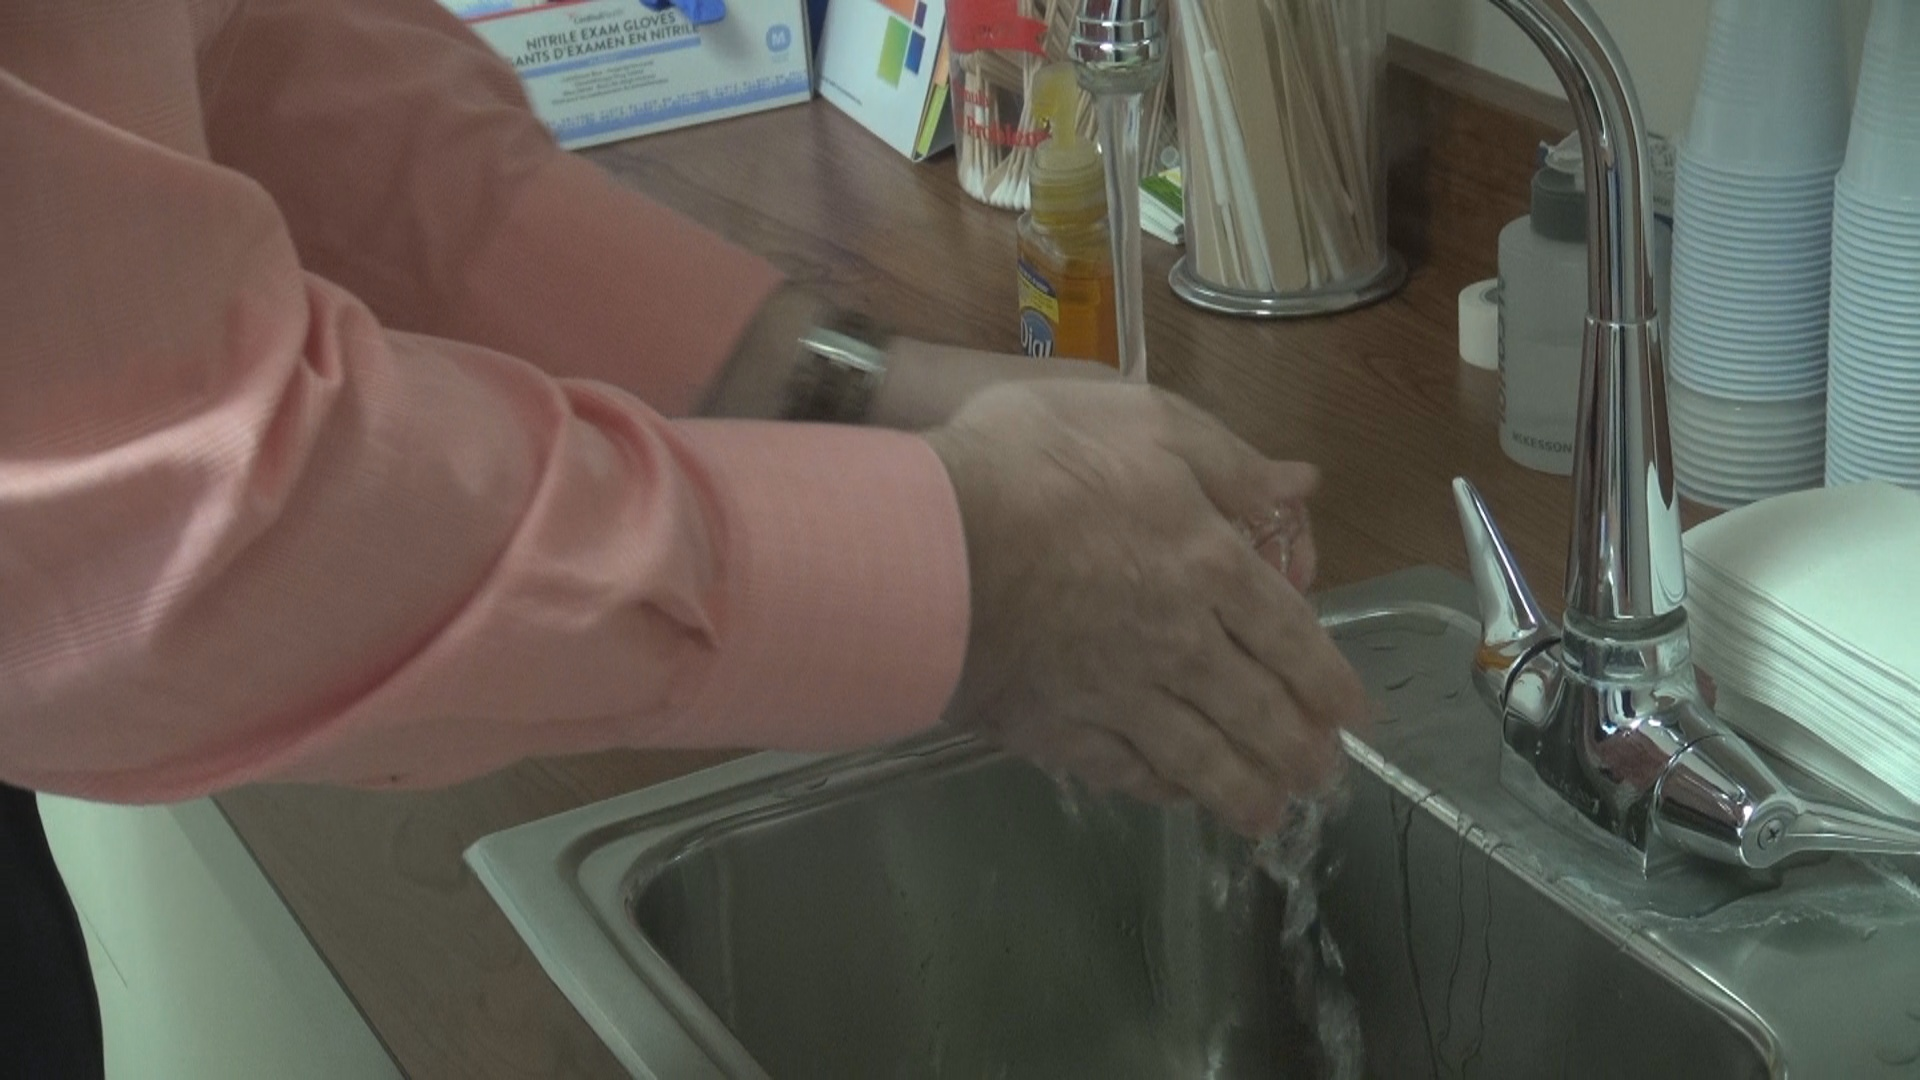 Hand washing for cold prevention